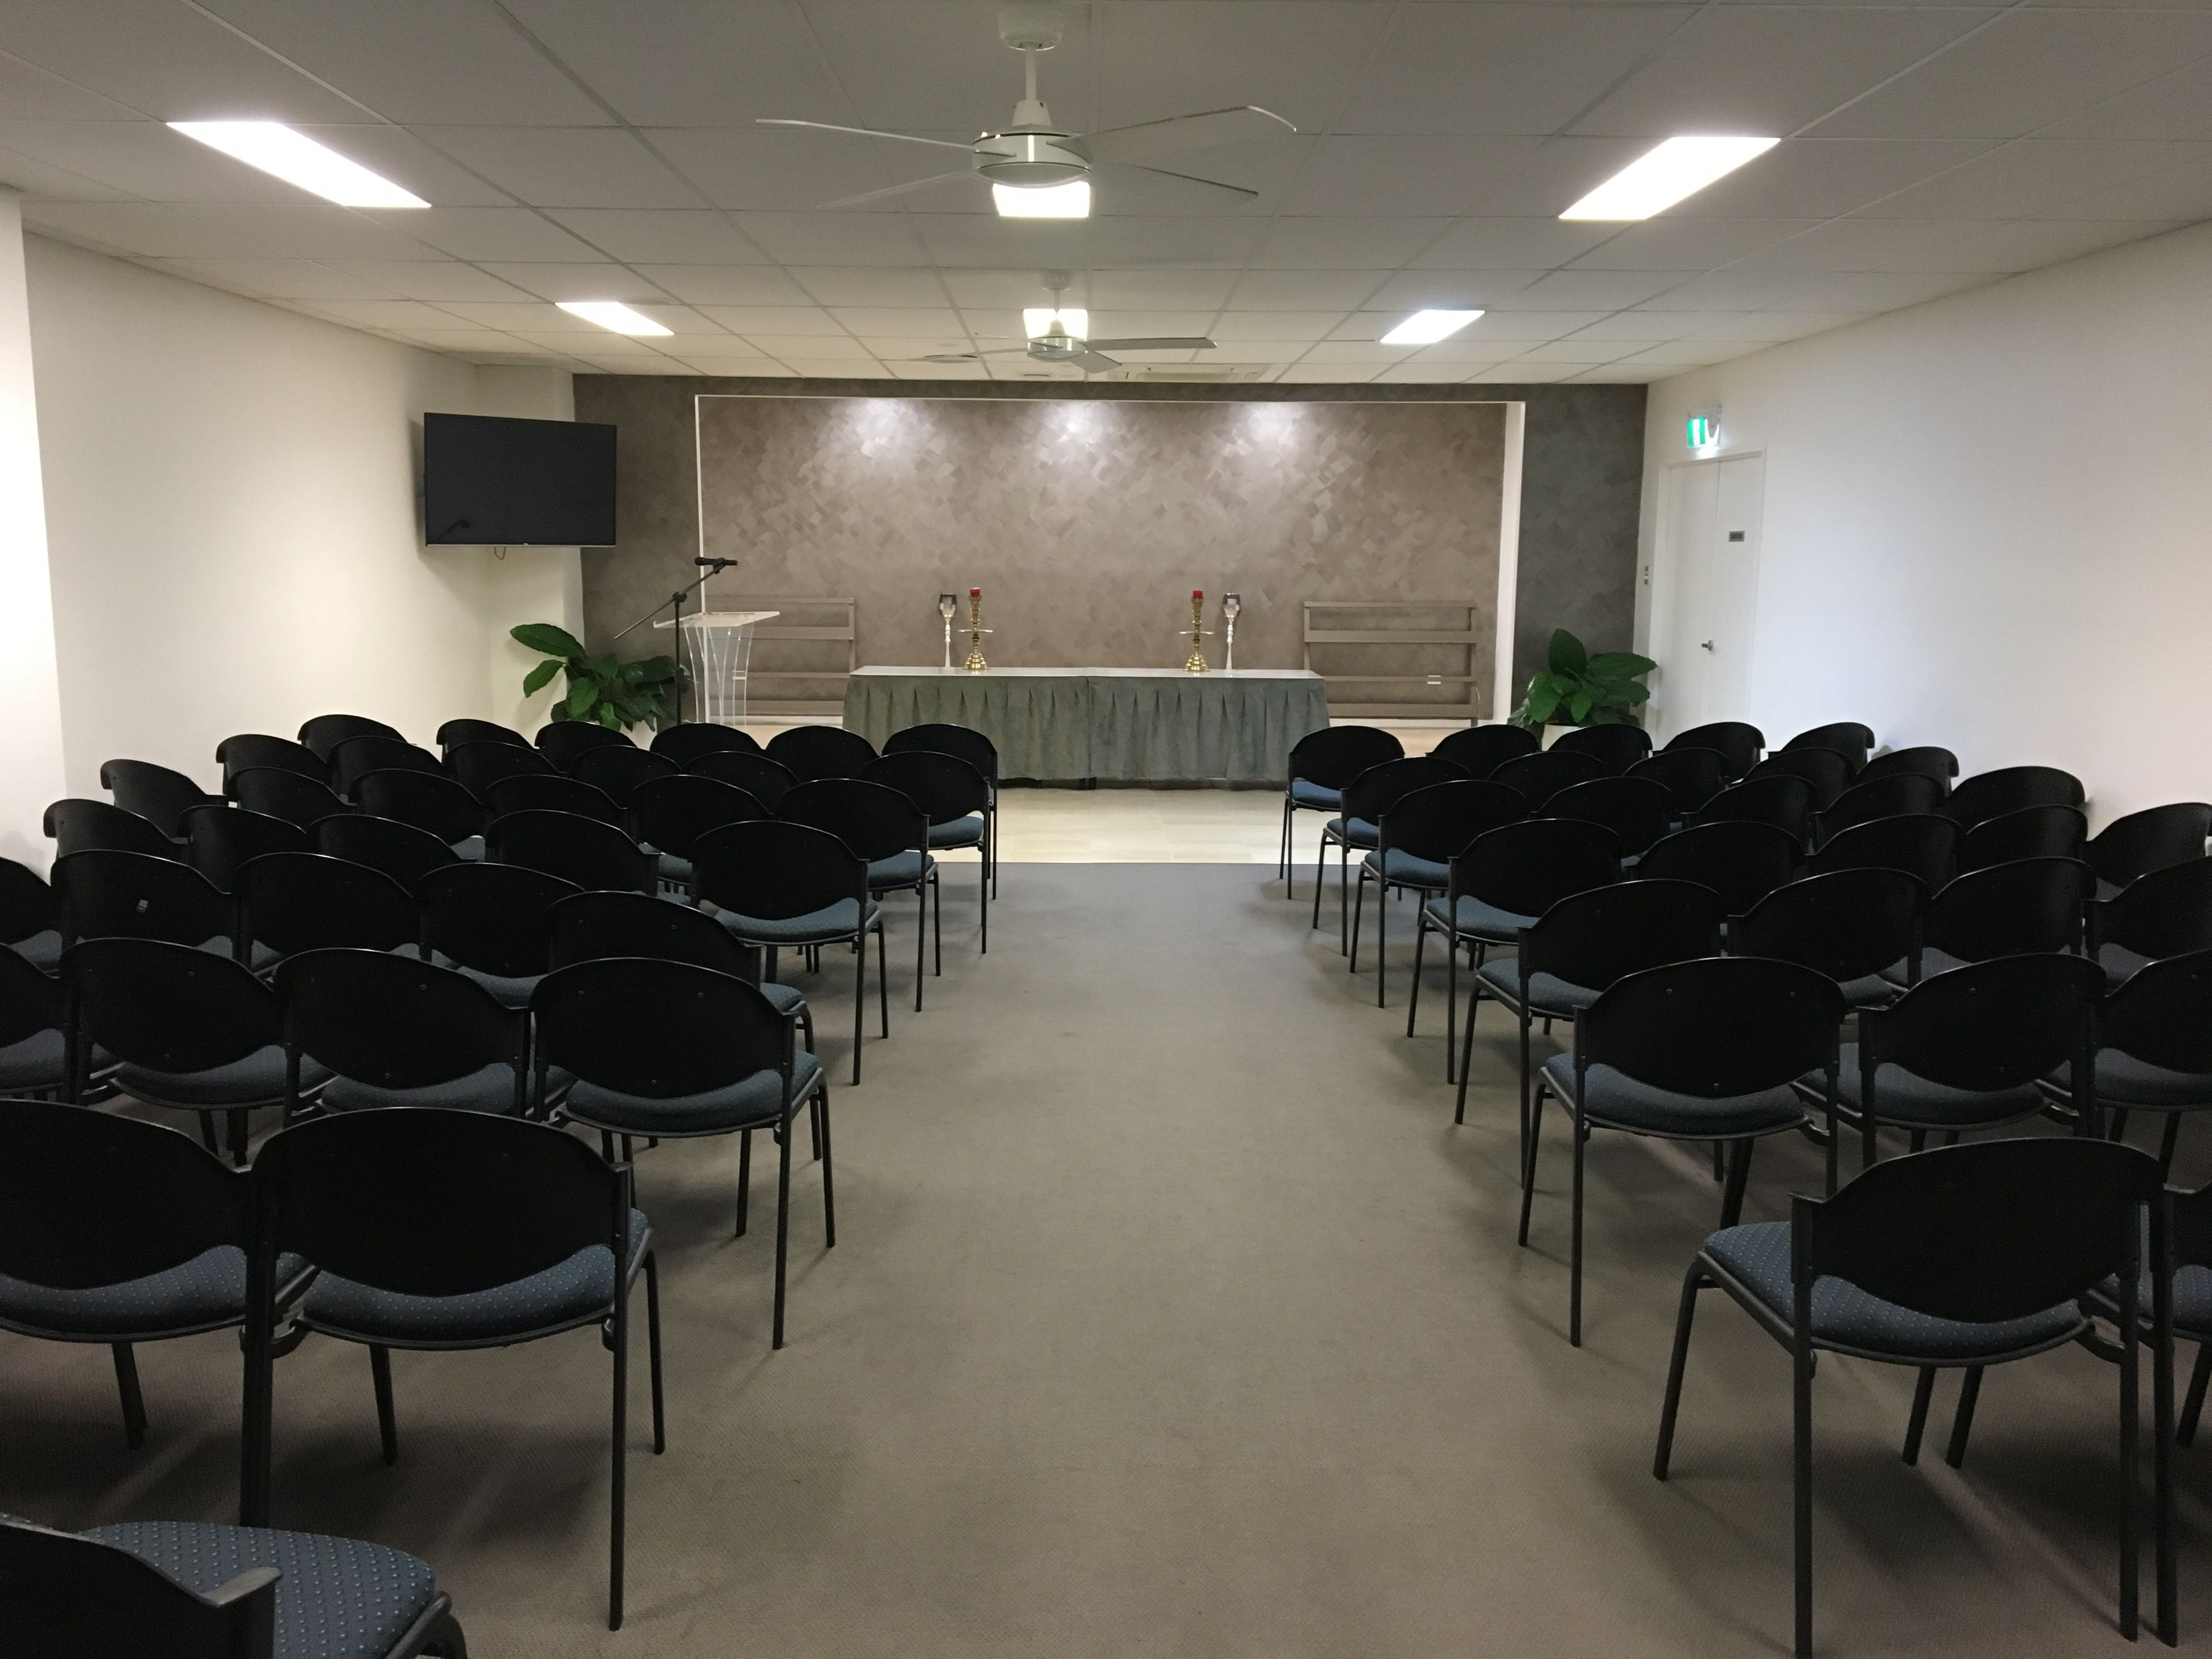 Image of MH Funerals service room